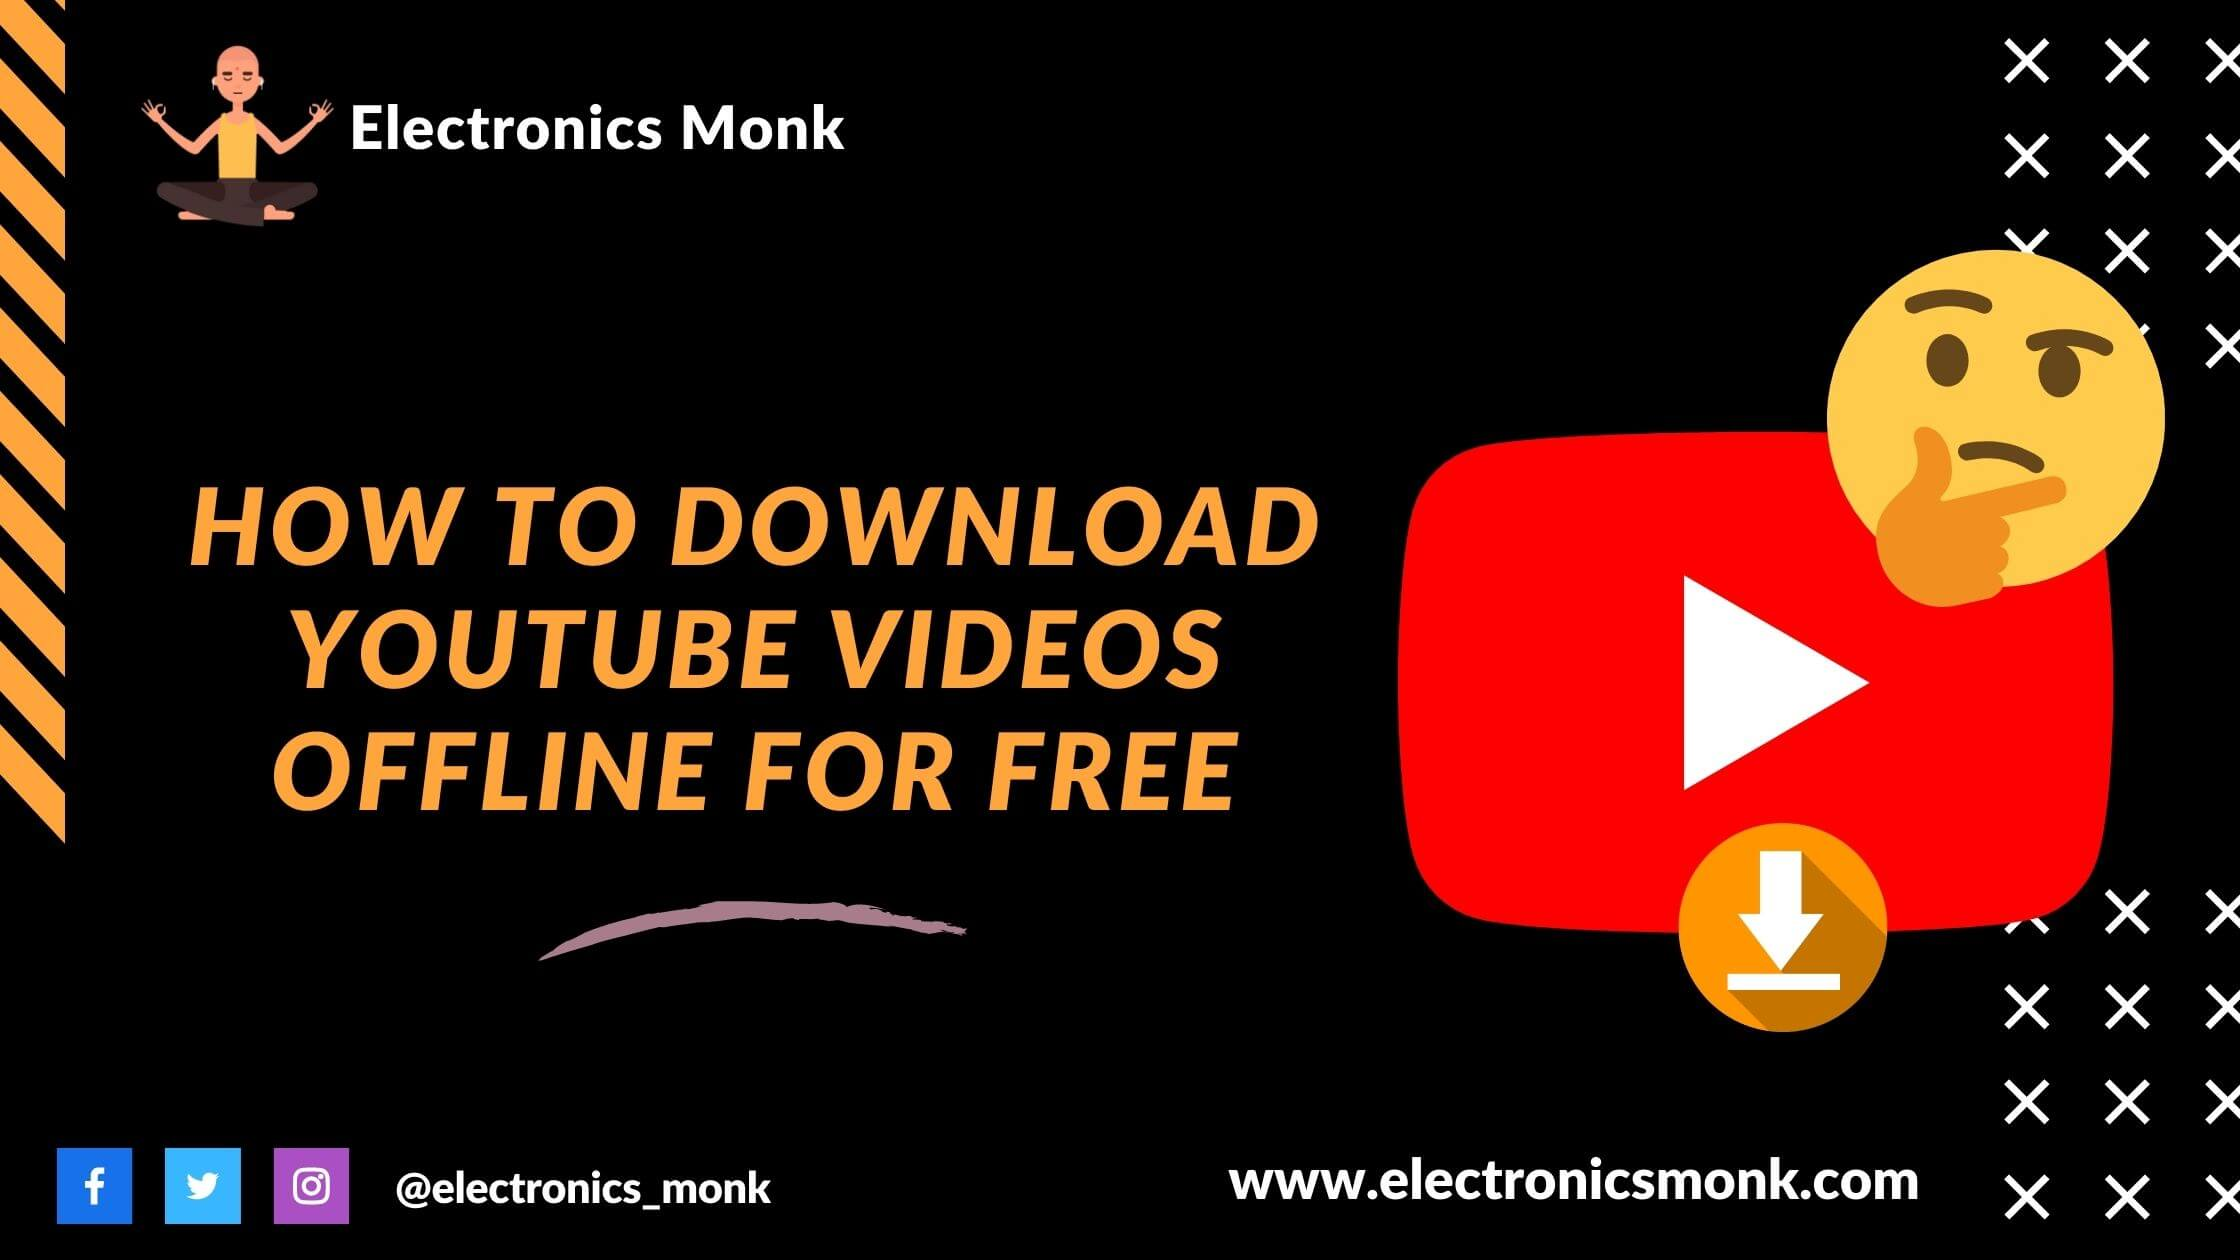 How to Download YouTube Videos Offline for Free